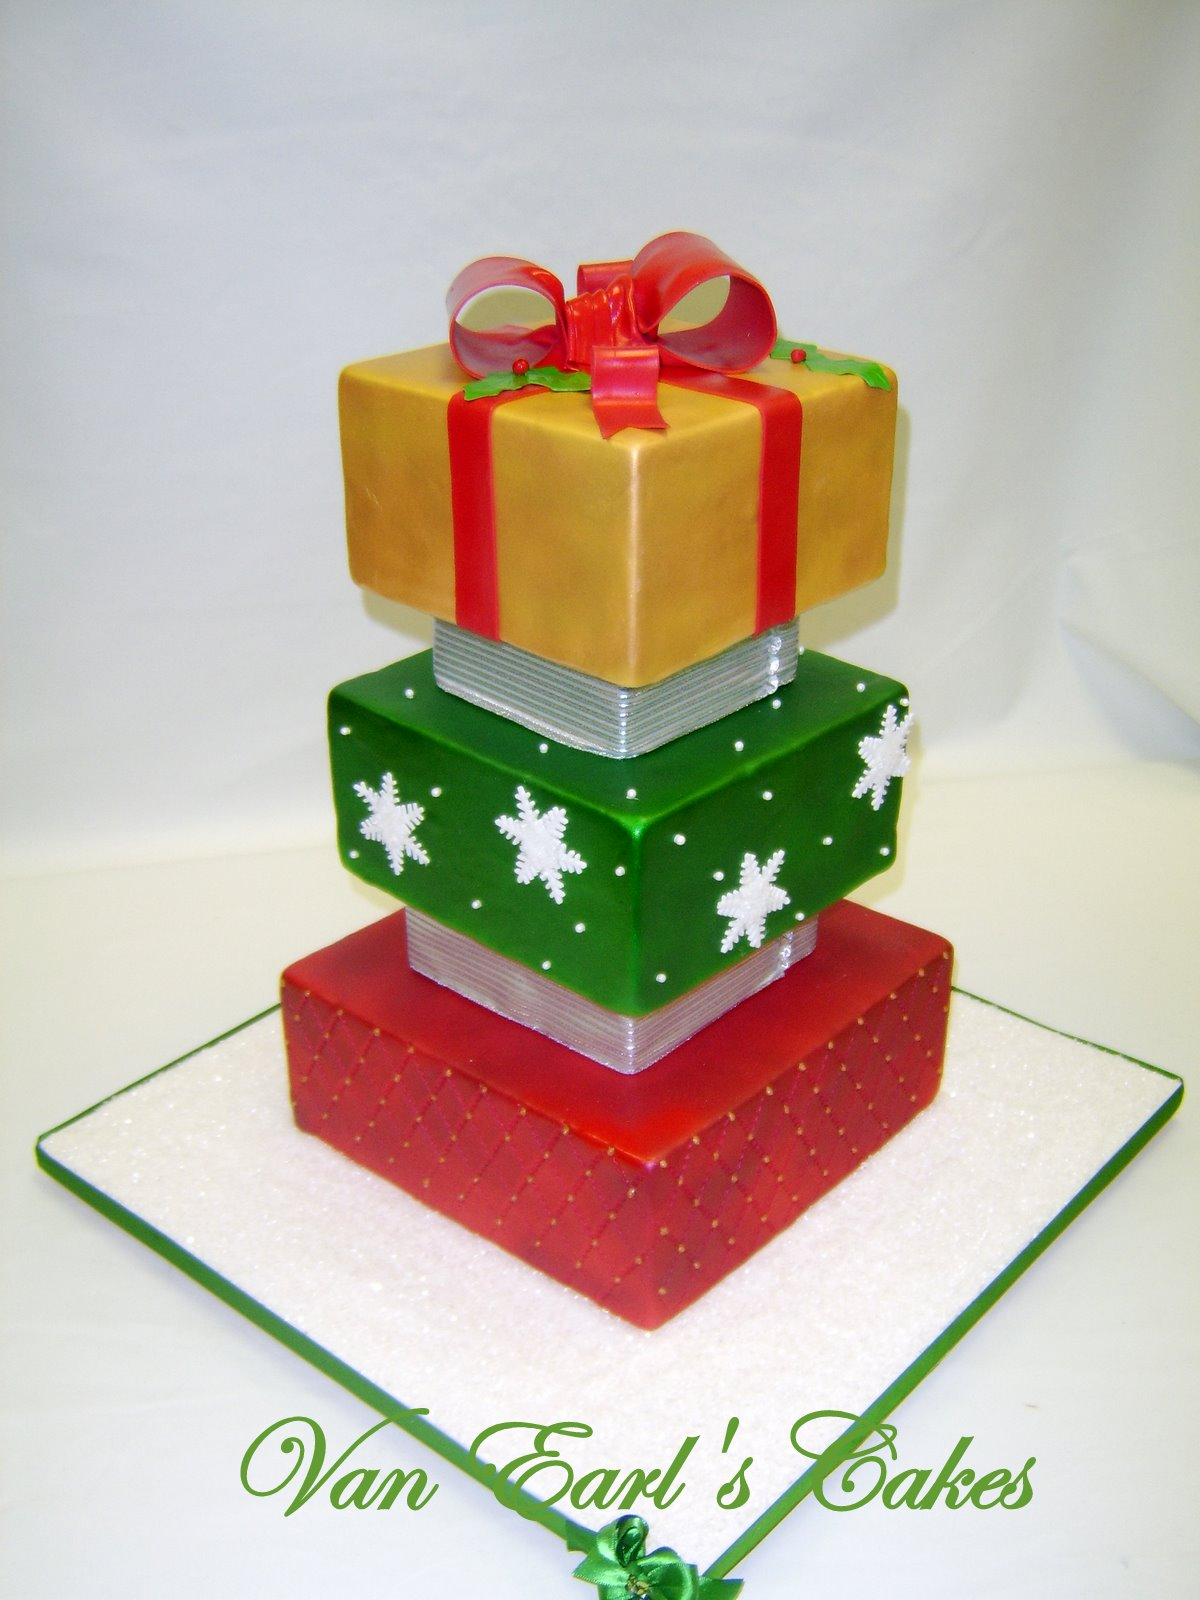 Christmas Cake Decoration Present : Van Earl s Cakes: Christmas Present Holiday Cake